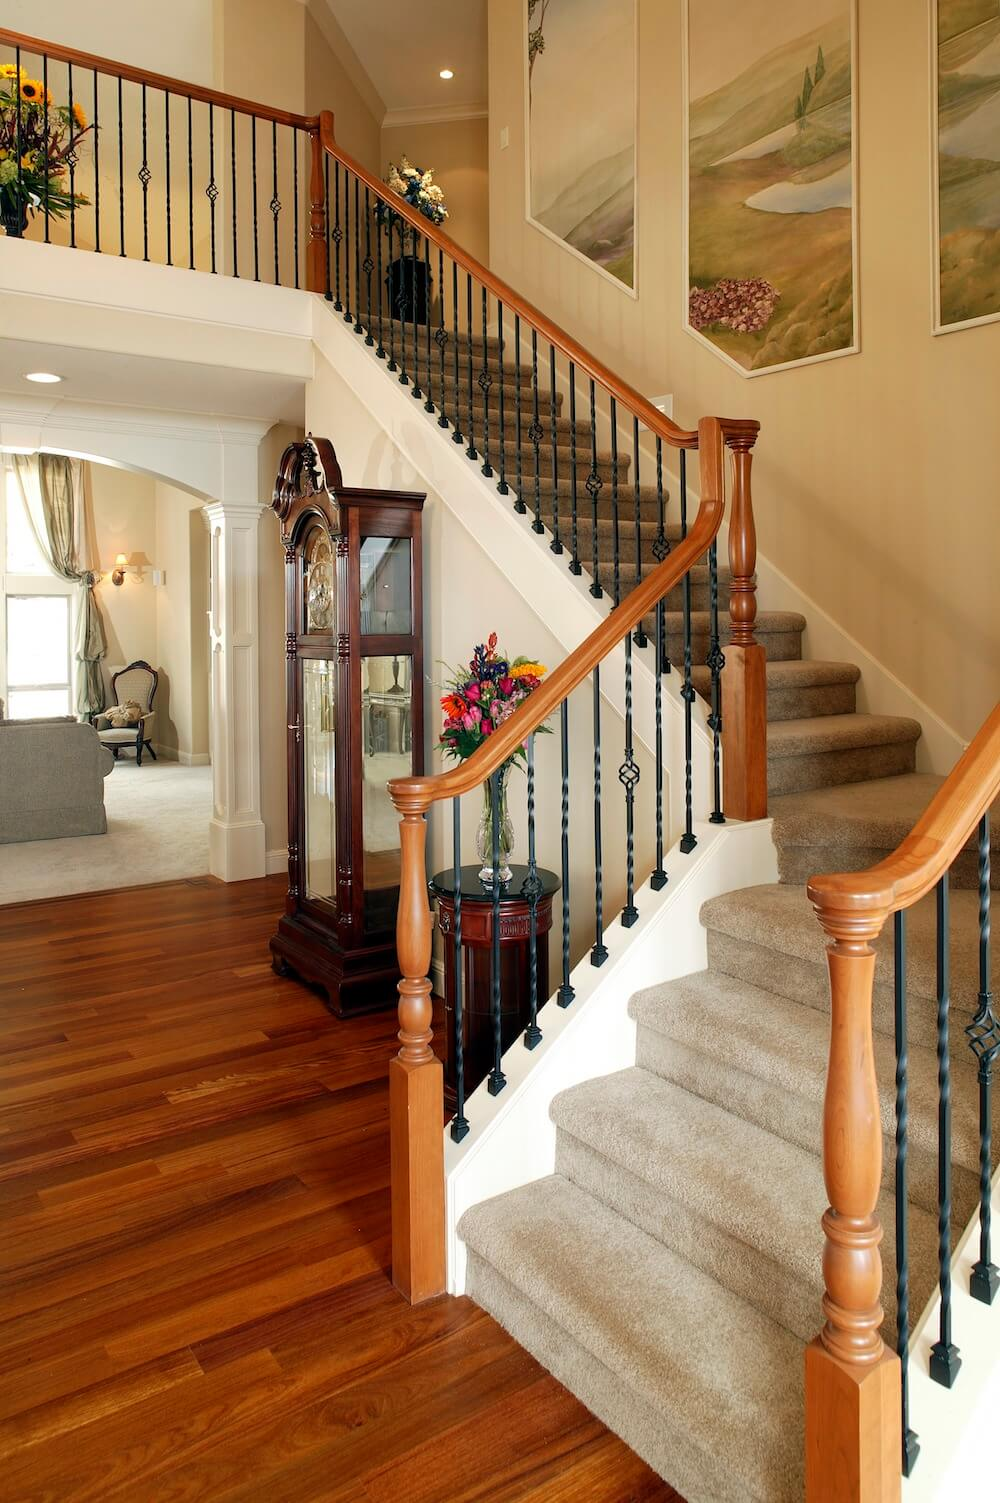 The Cost To Build Stairs Varies See Staircase Installation Costs Near You